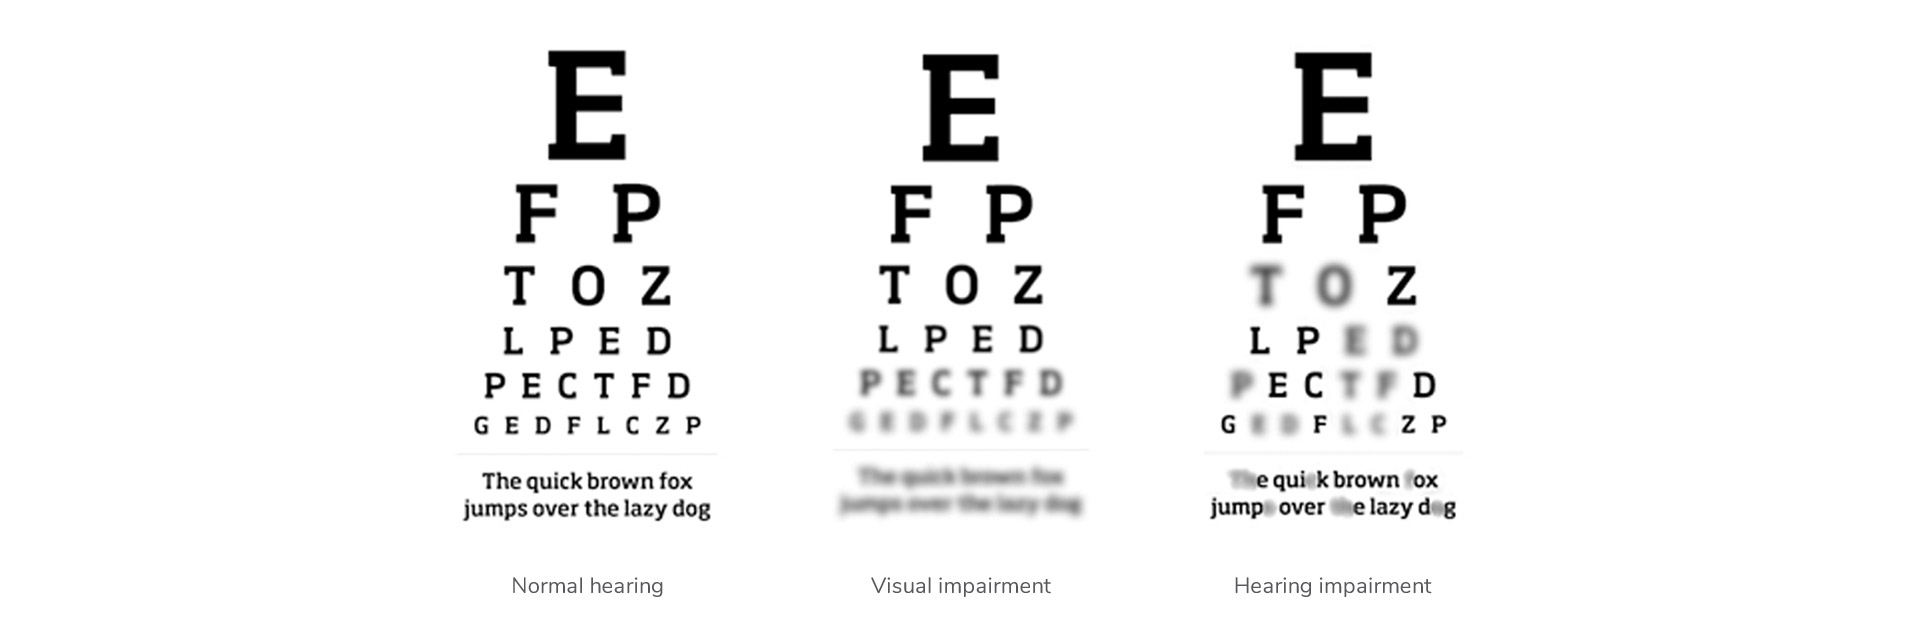 Hearing loss differs from vision loss